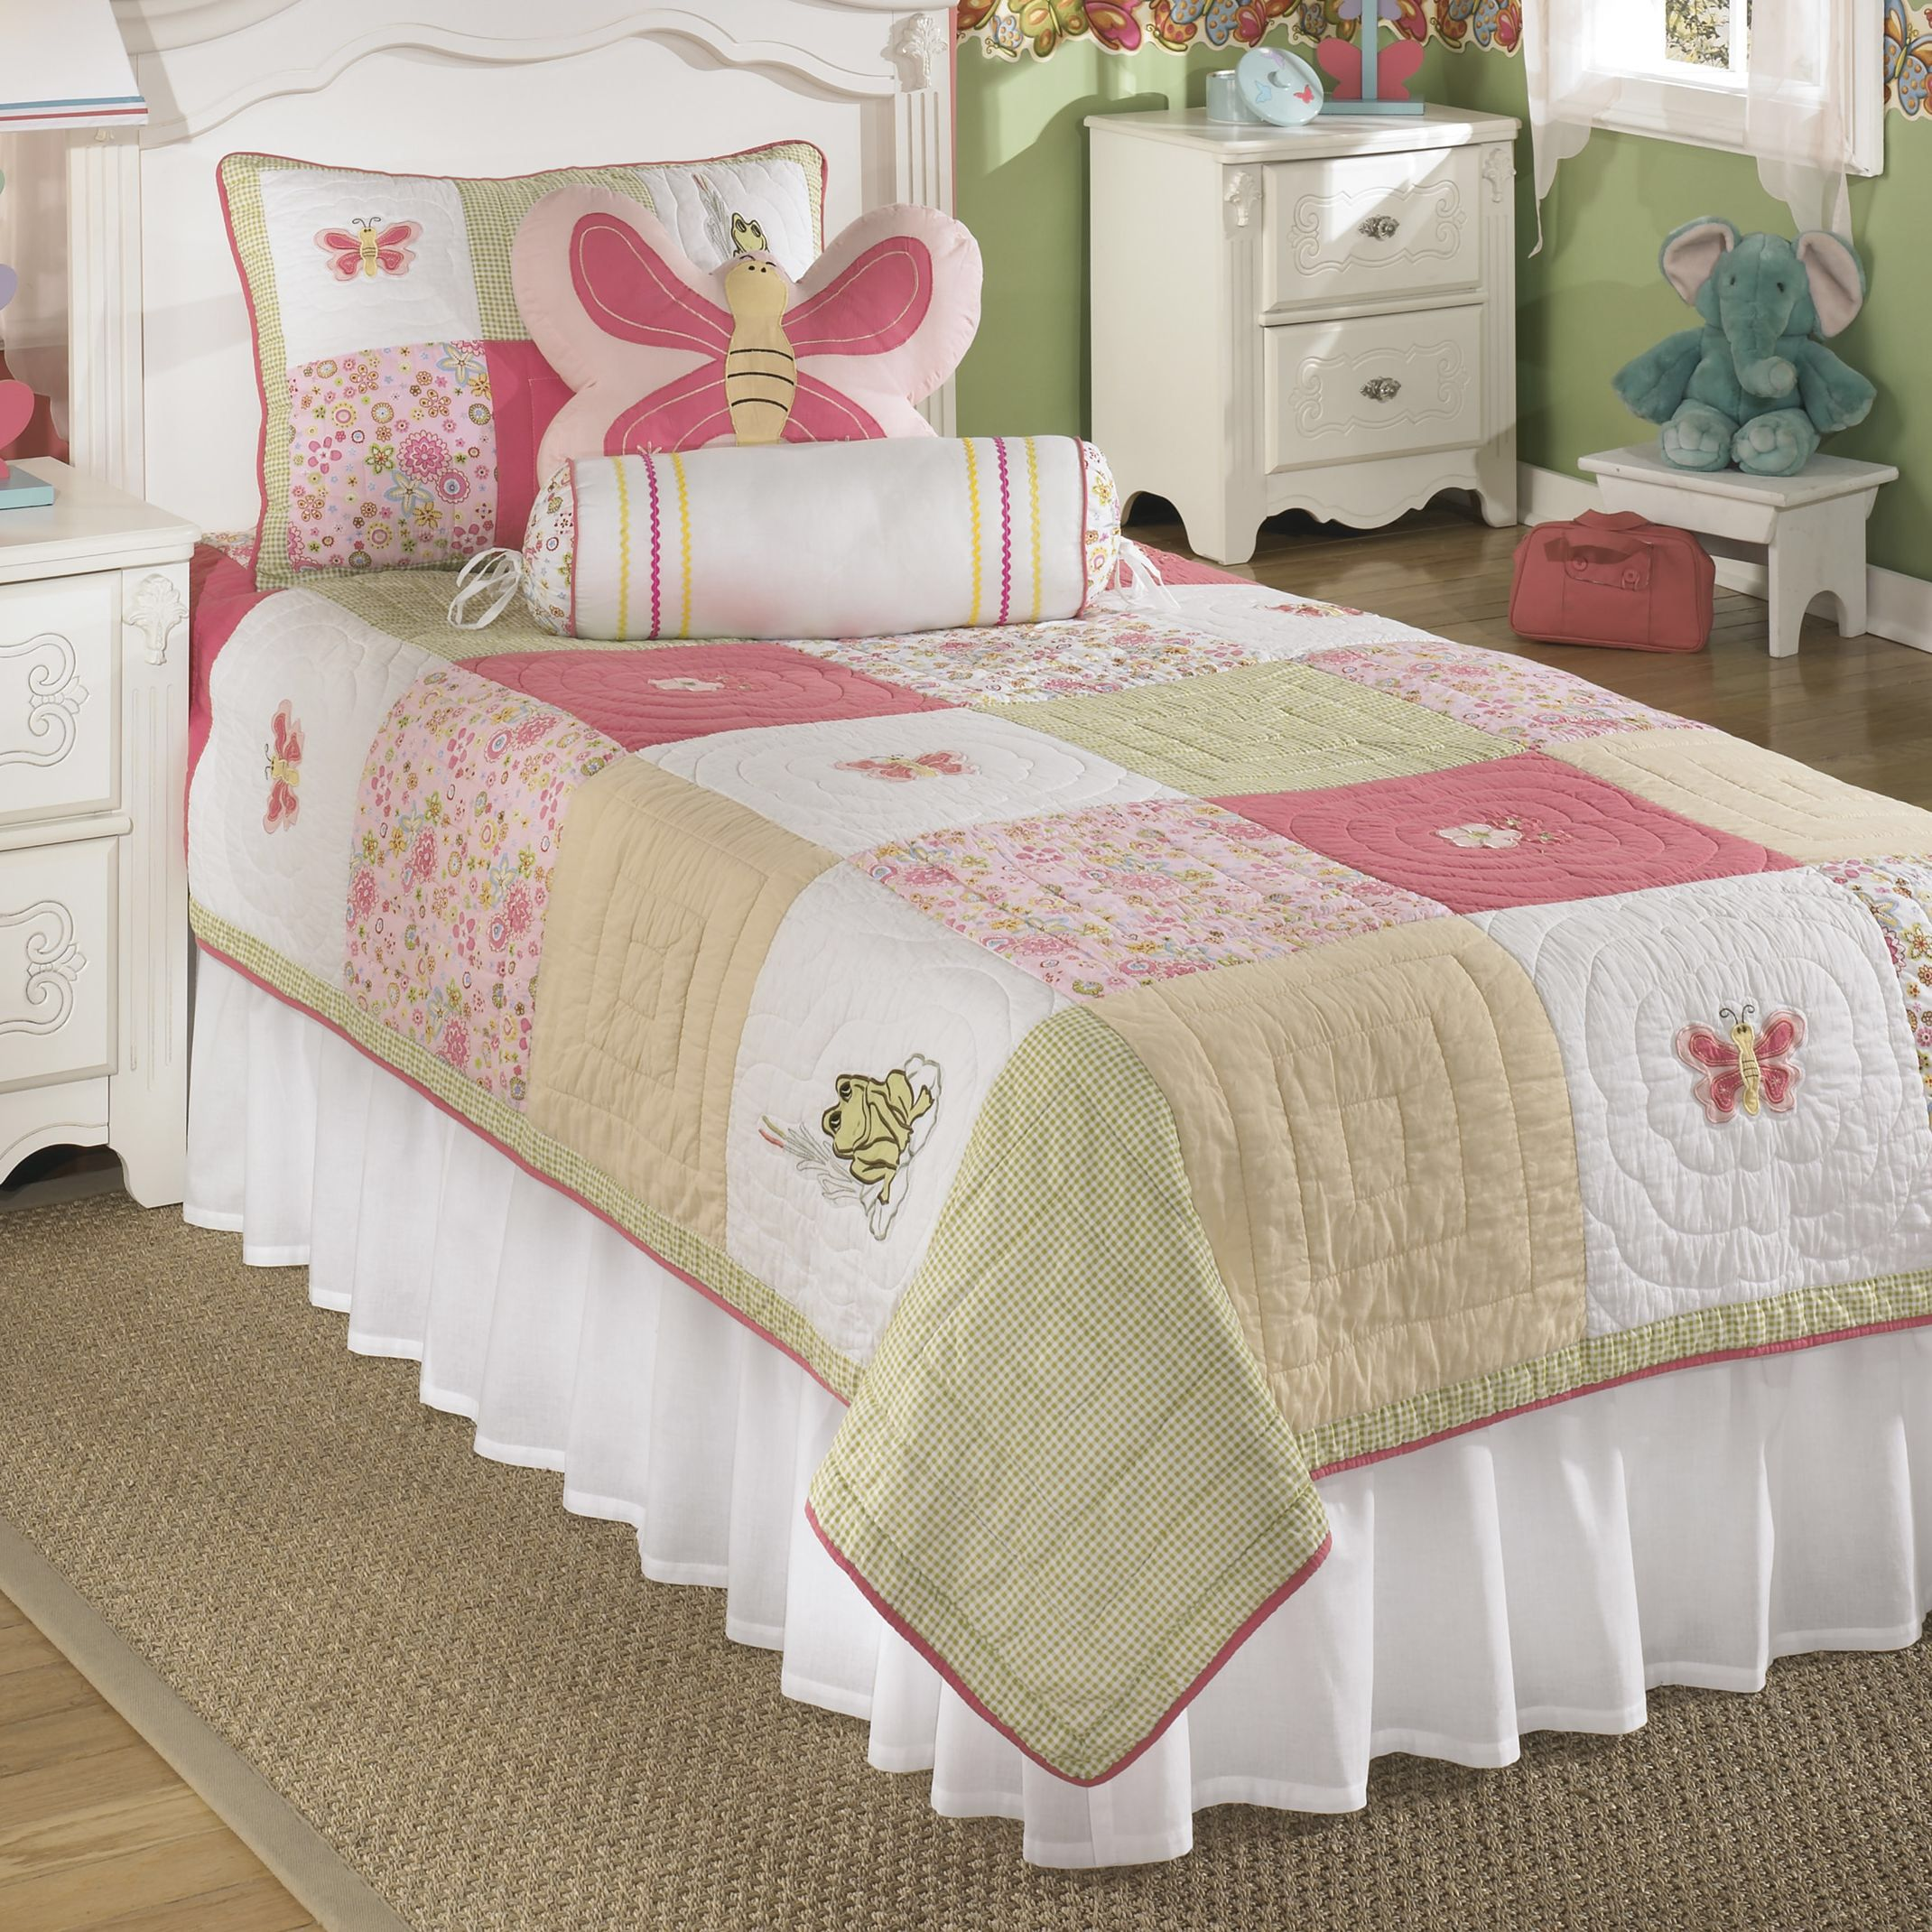 Signature Design by Ashley Adeline Comforter Set Bedding